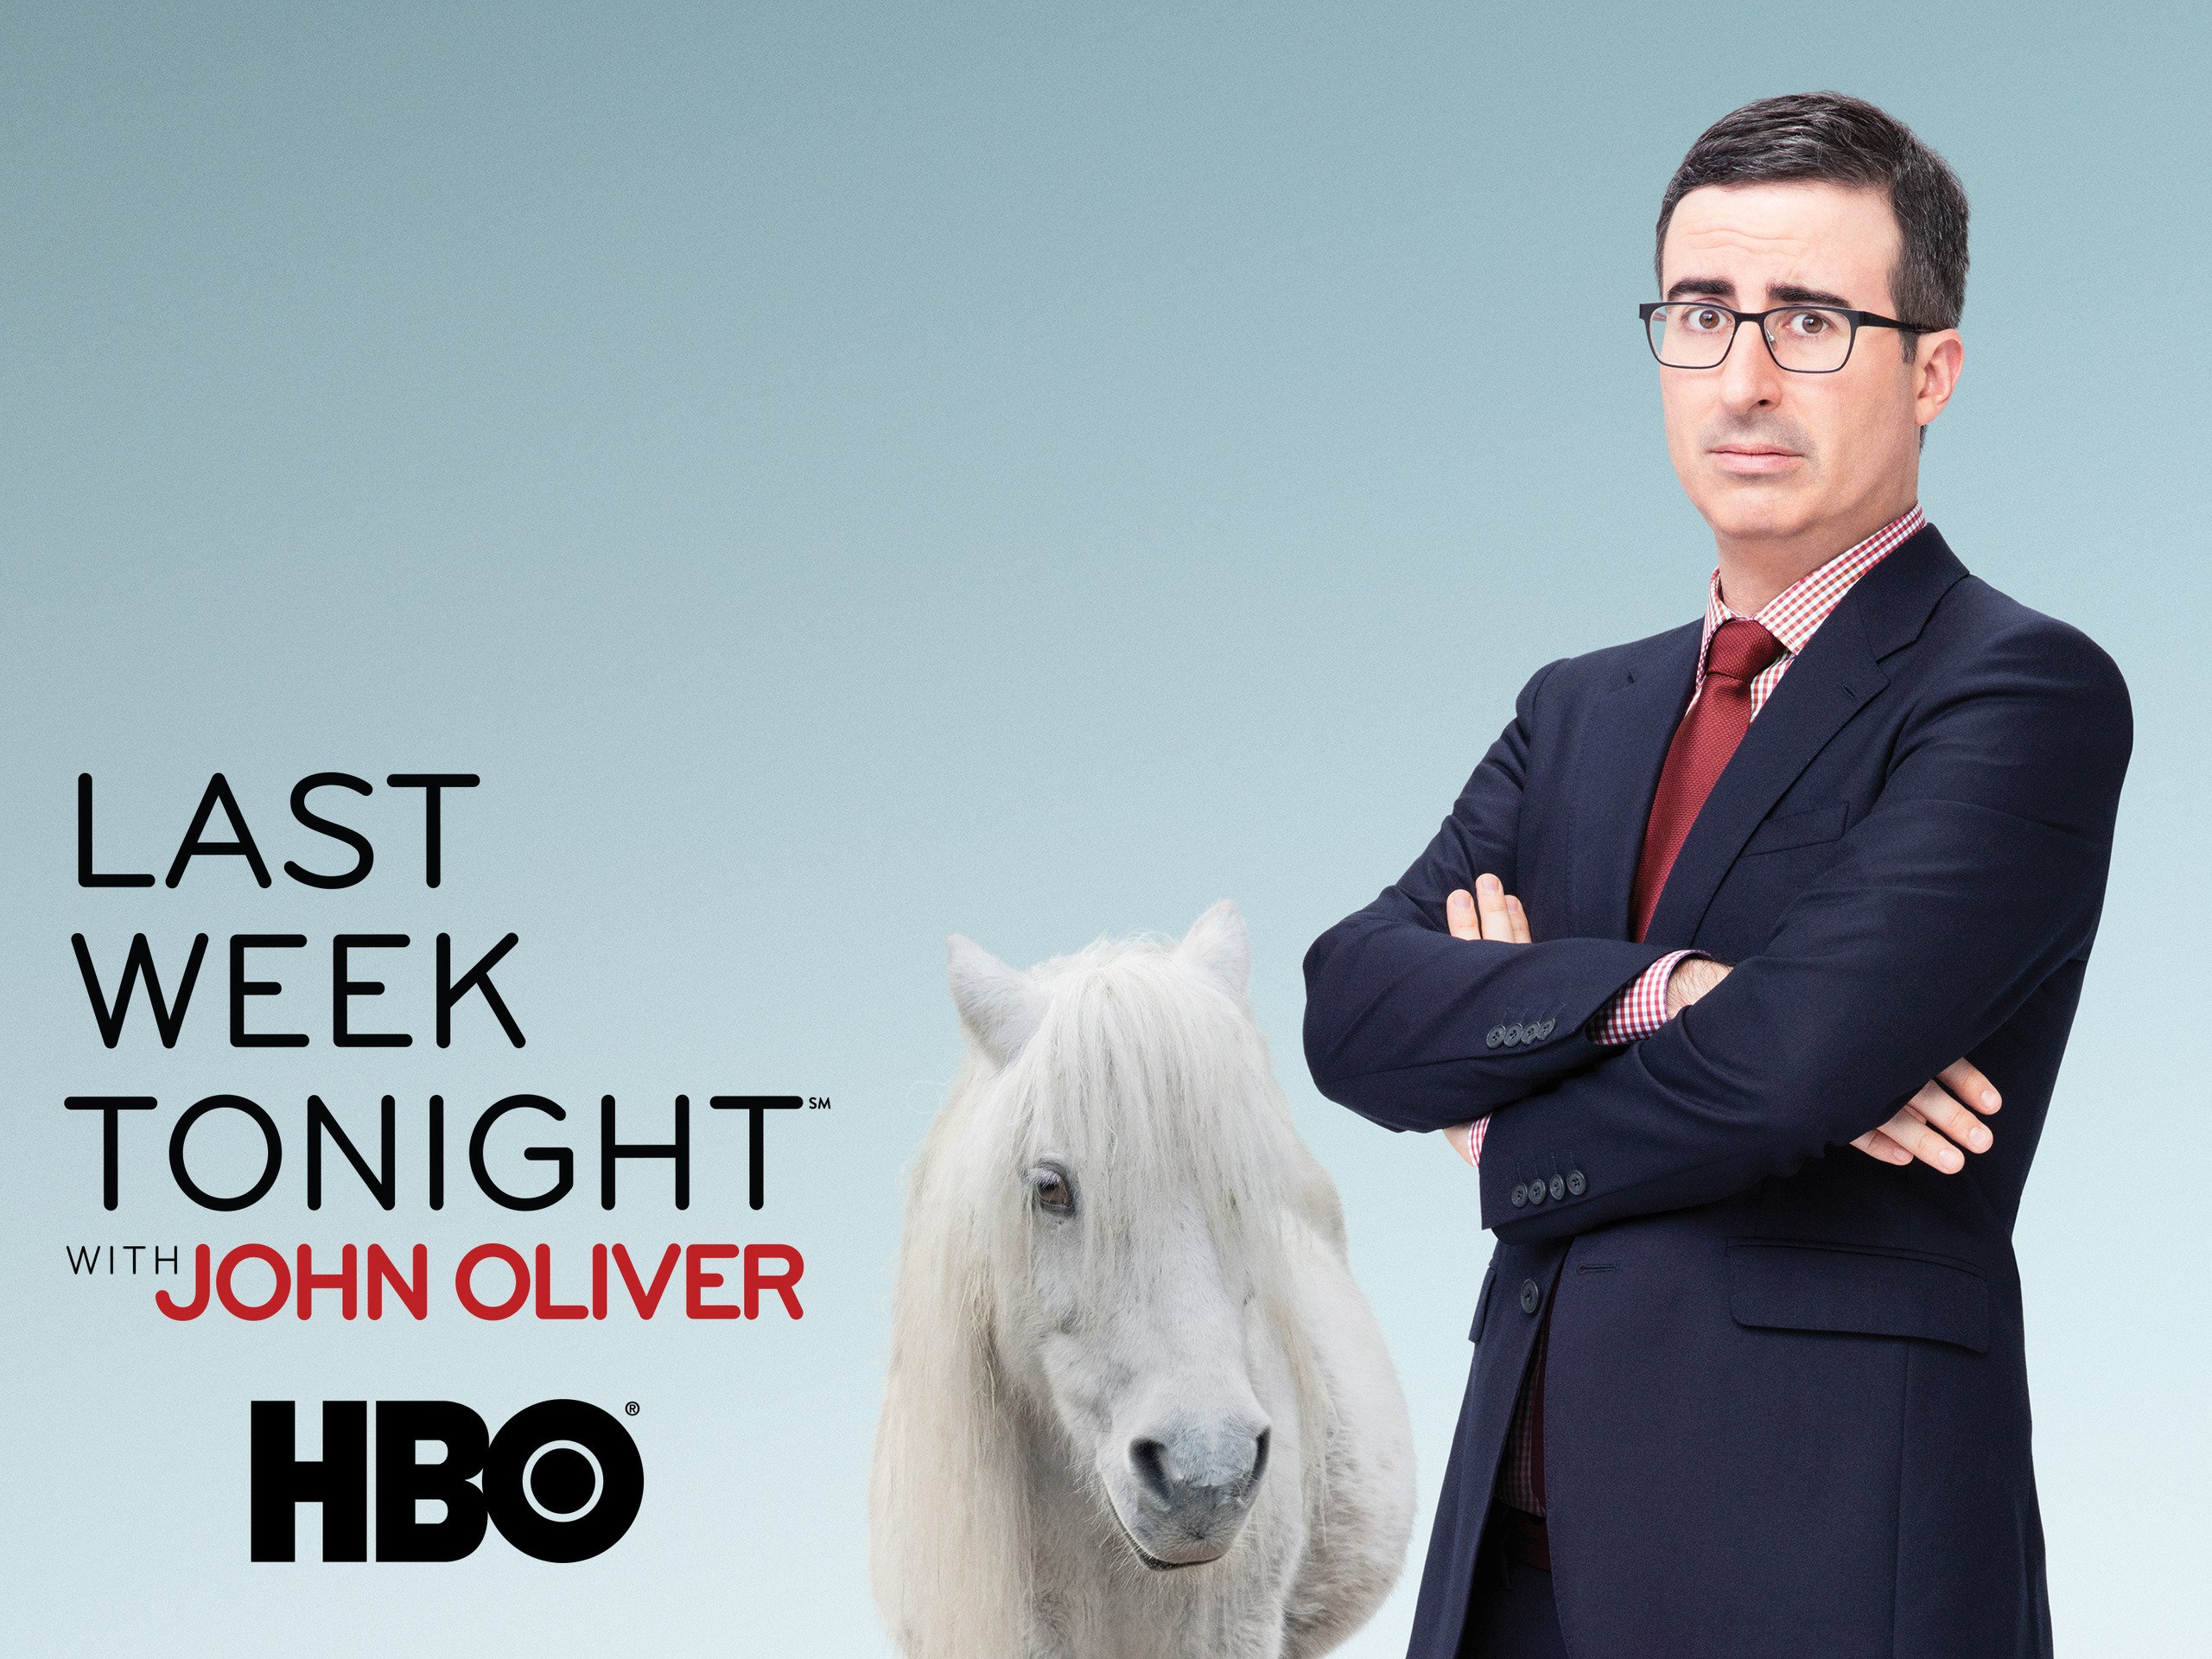 last week tonight with john oliver season 4 episode 28